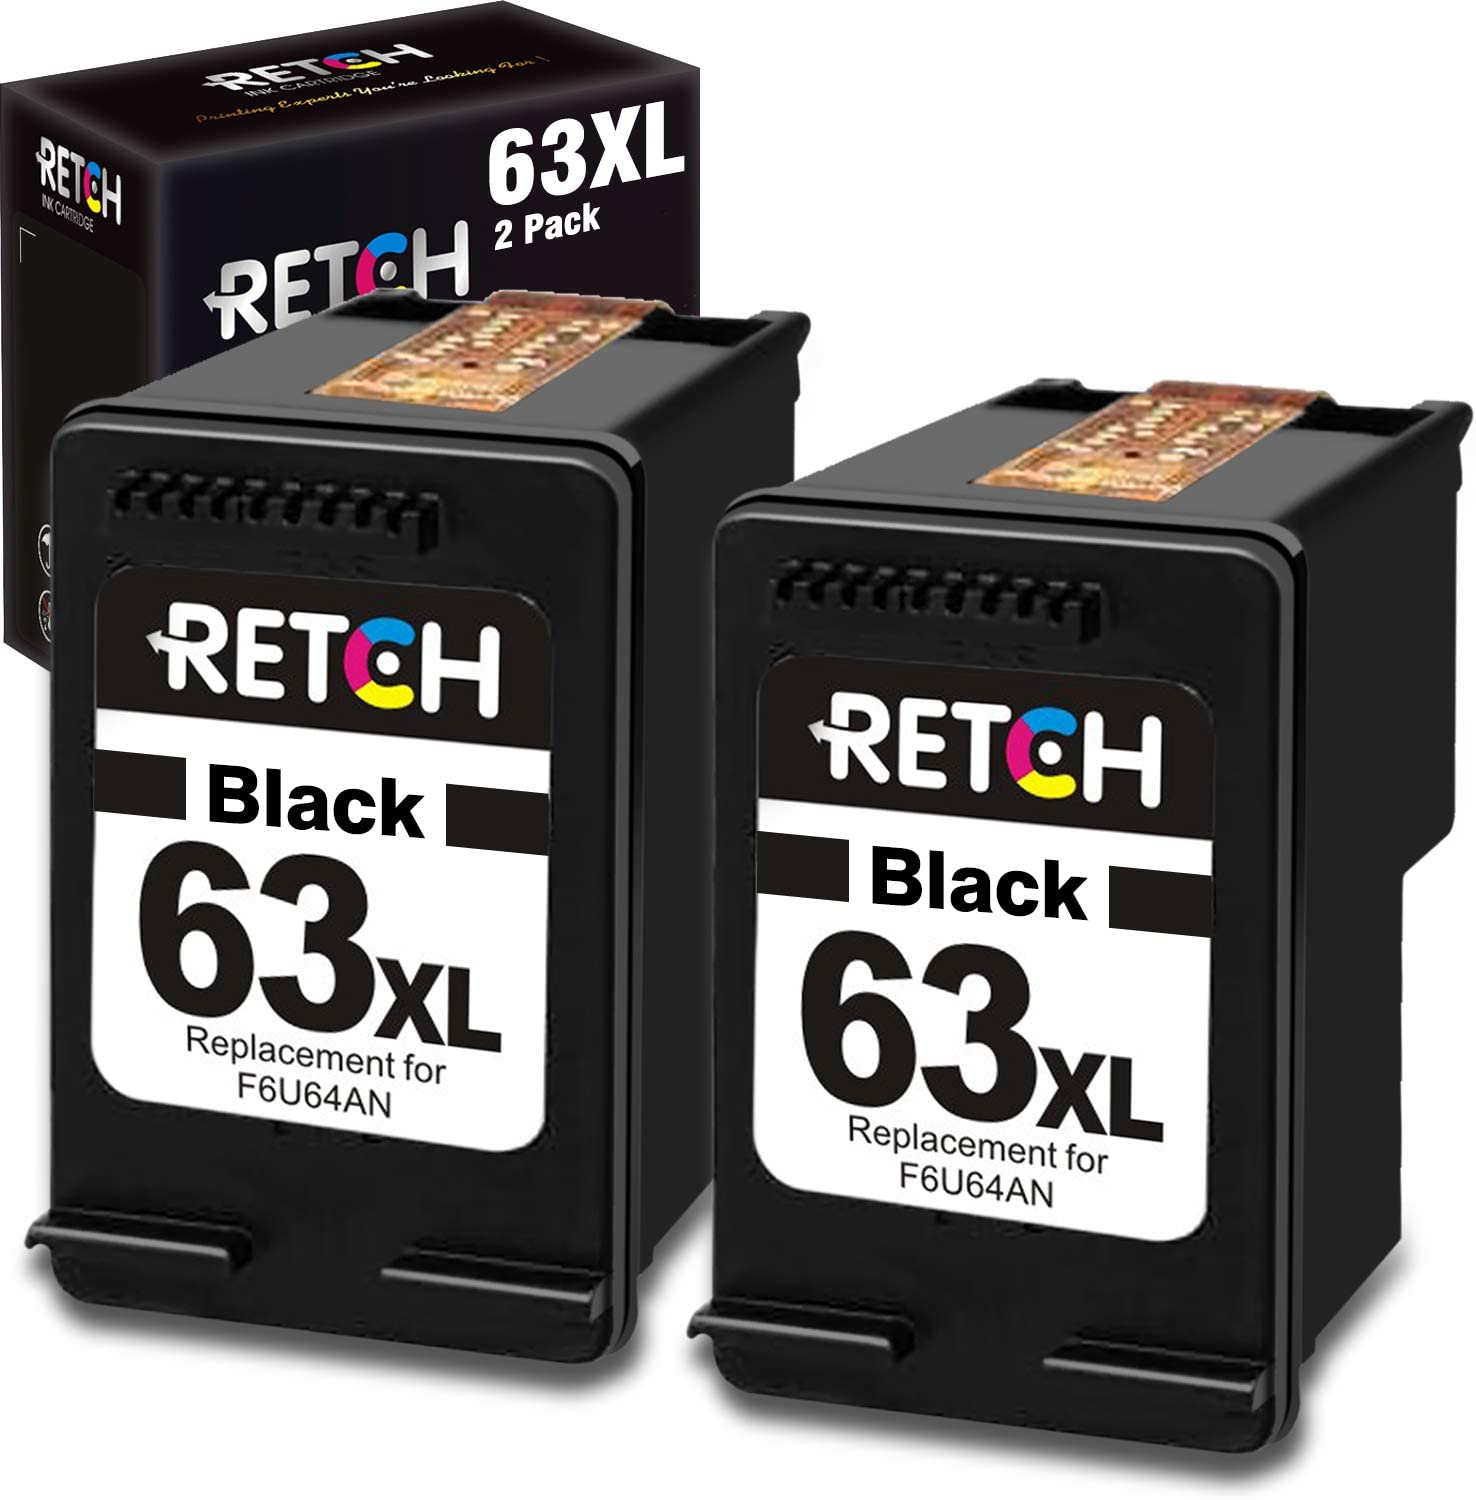 RETCH ReManufactured Ink Cartridge Replacement for HP 63XL 63 XL Black, Used with Envy 4520 4516 Officejet 5255 5258 5220 3830 4650 3831 3833 4655 DeskJet 1112 3630 3632 3633 3634 Printers (2 Black)